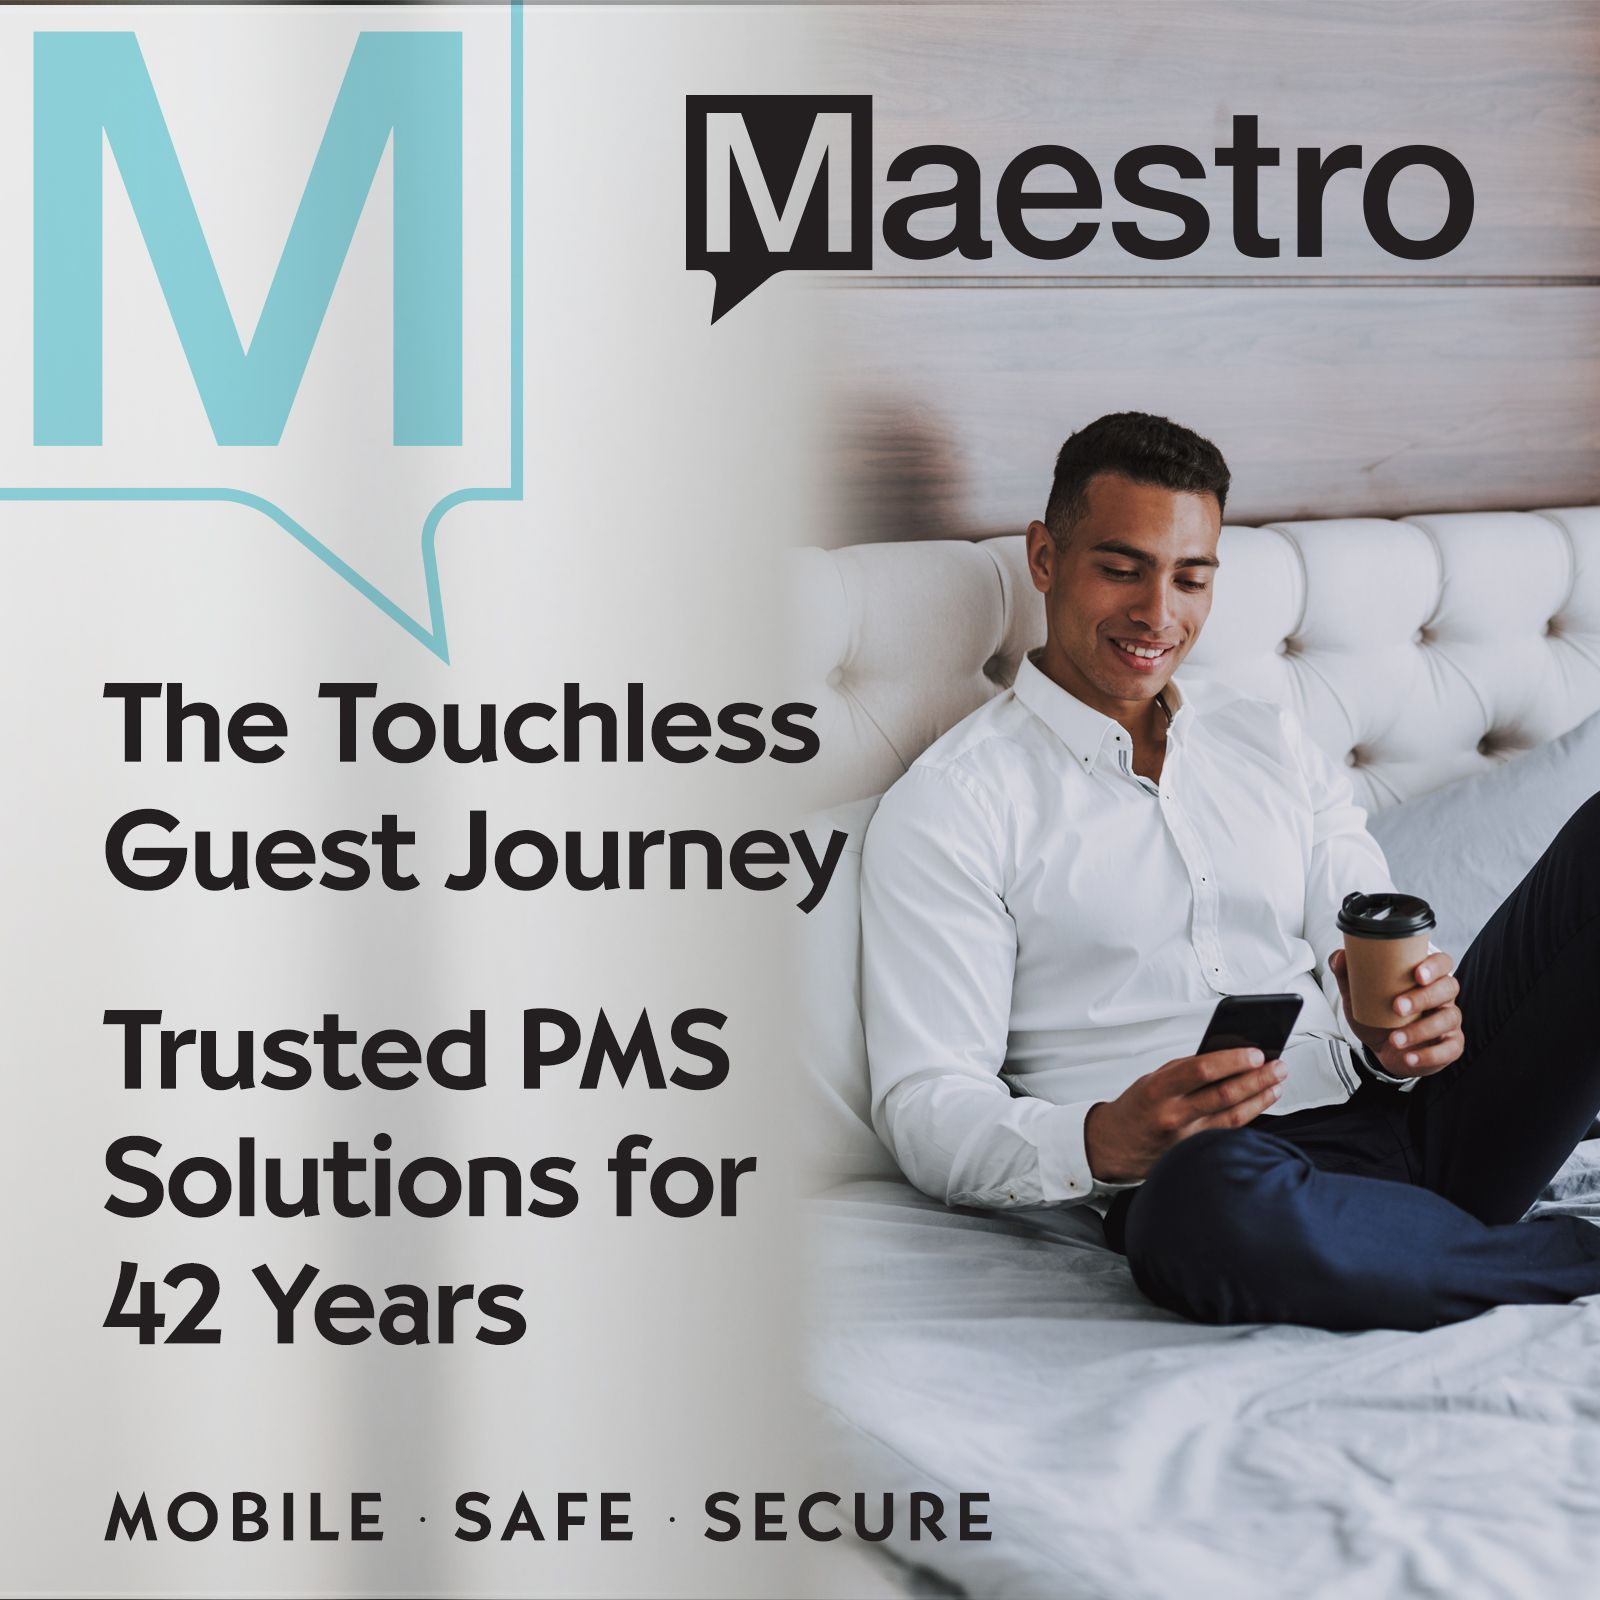 Maestro Touchless - Maestro PMS Direct Booking Metrics Show Growing Recovery for Independent Properties - Innovative Property Management Software Solutions Powering Hotels, Resorts & Multi‑Property Groups.